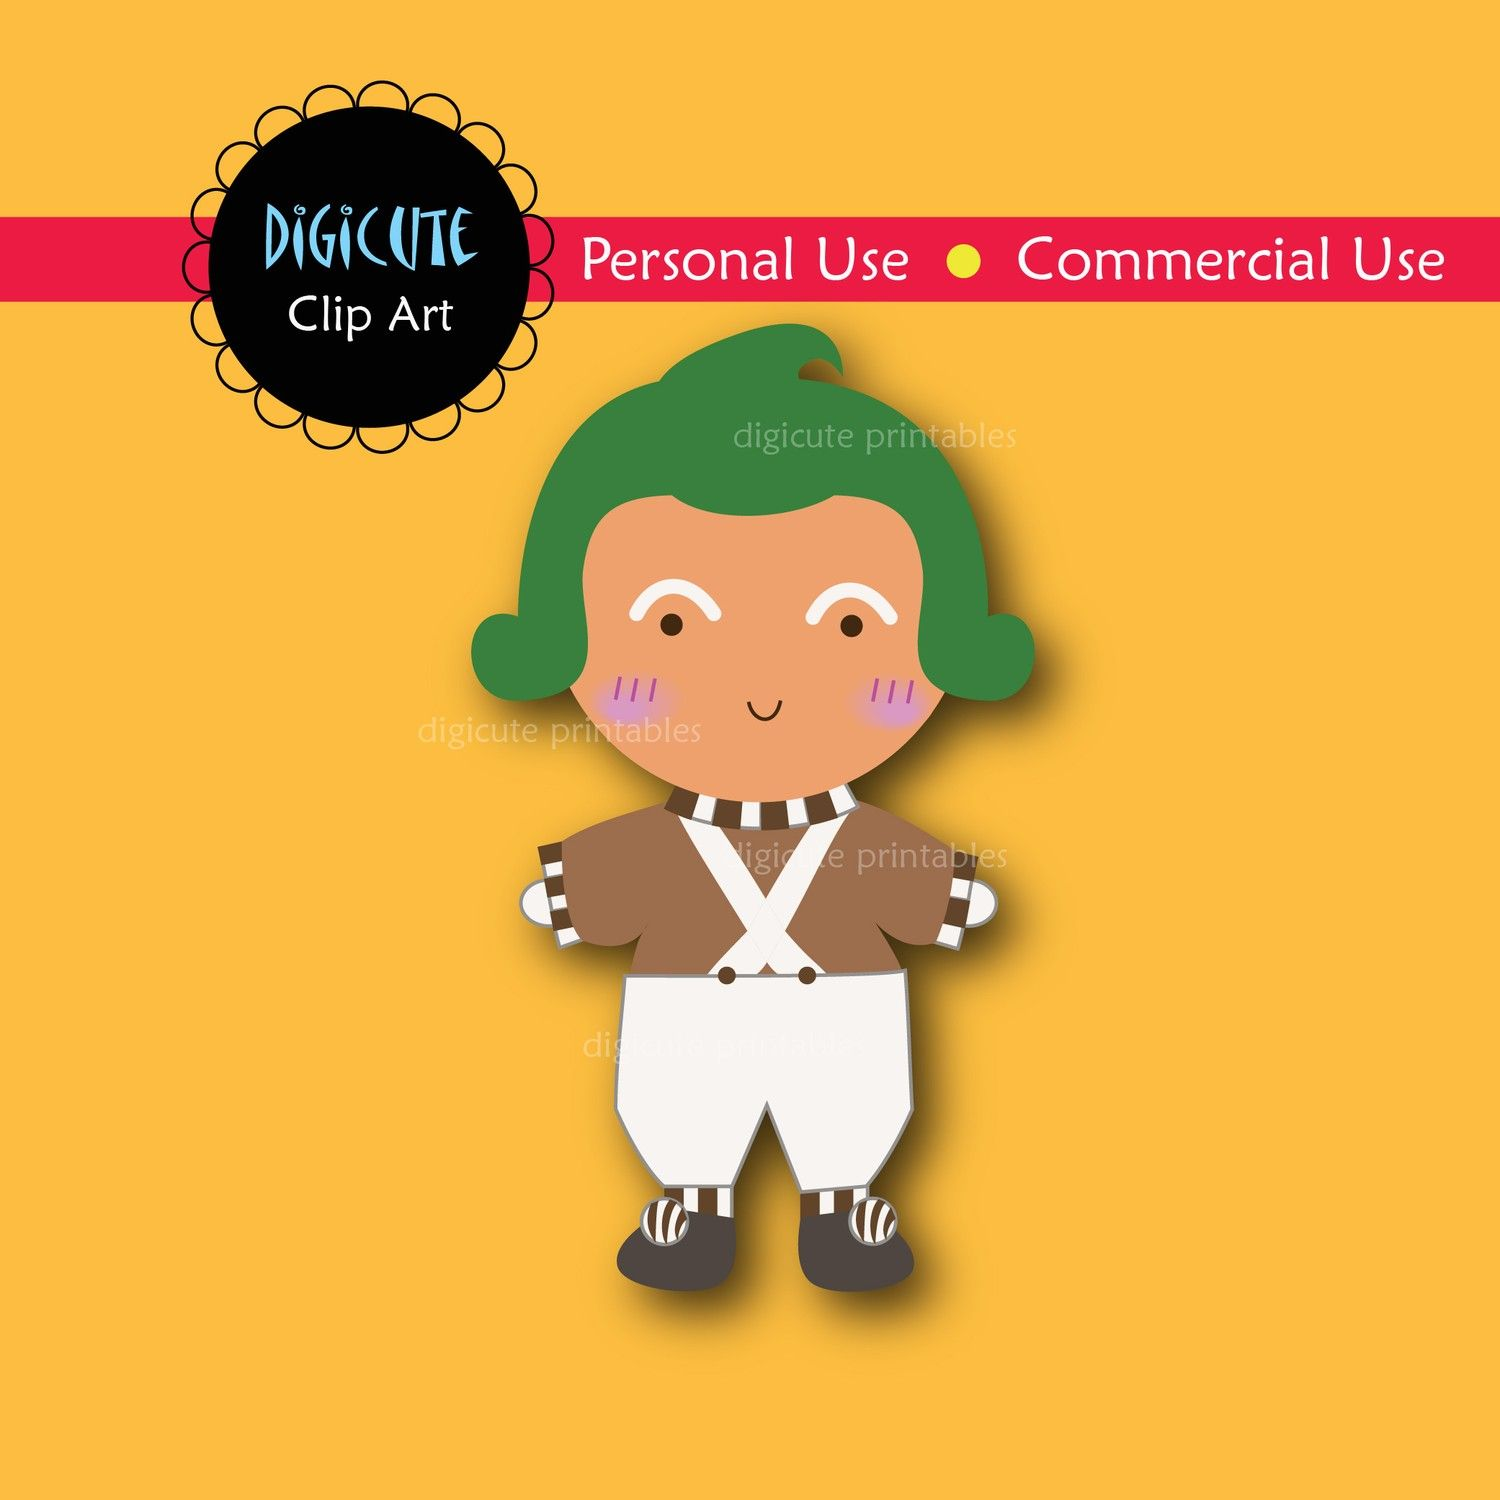 Umpa lumpa charlie and the chocolate factory cartoon clipart clip black and white stock Oompa Loompa from Charlie and the Chocolate Factory Digital ... clip black and white stock